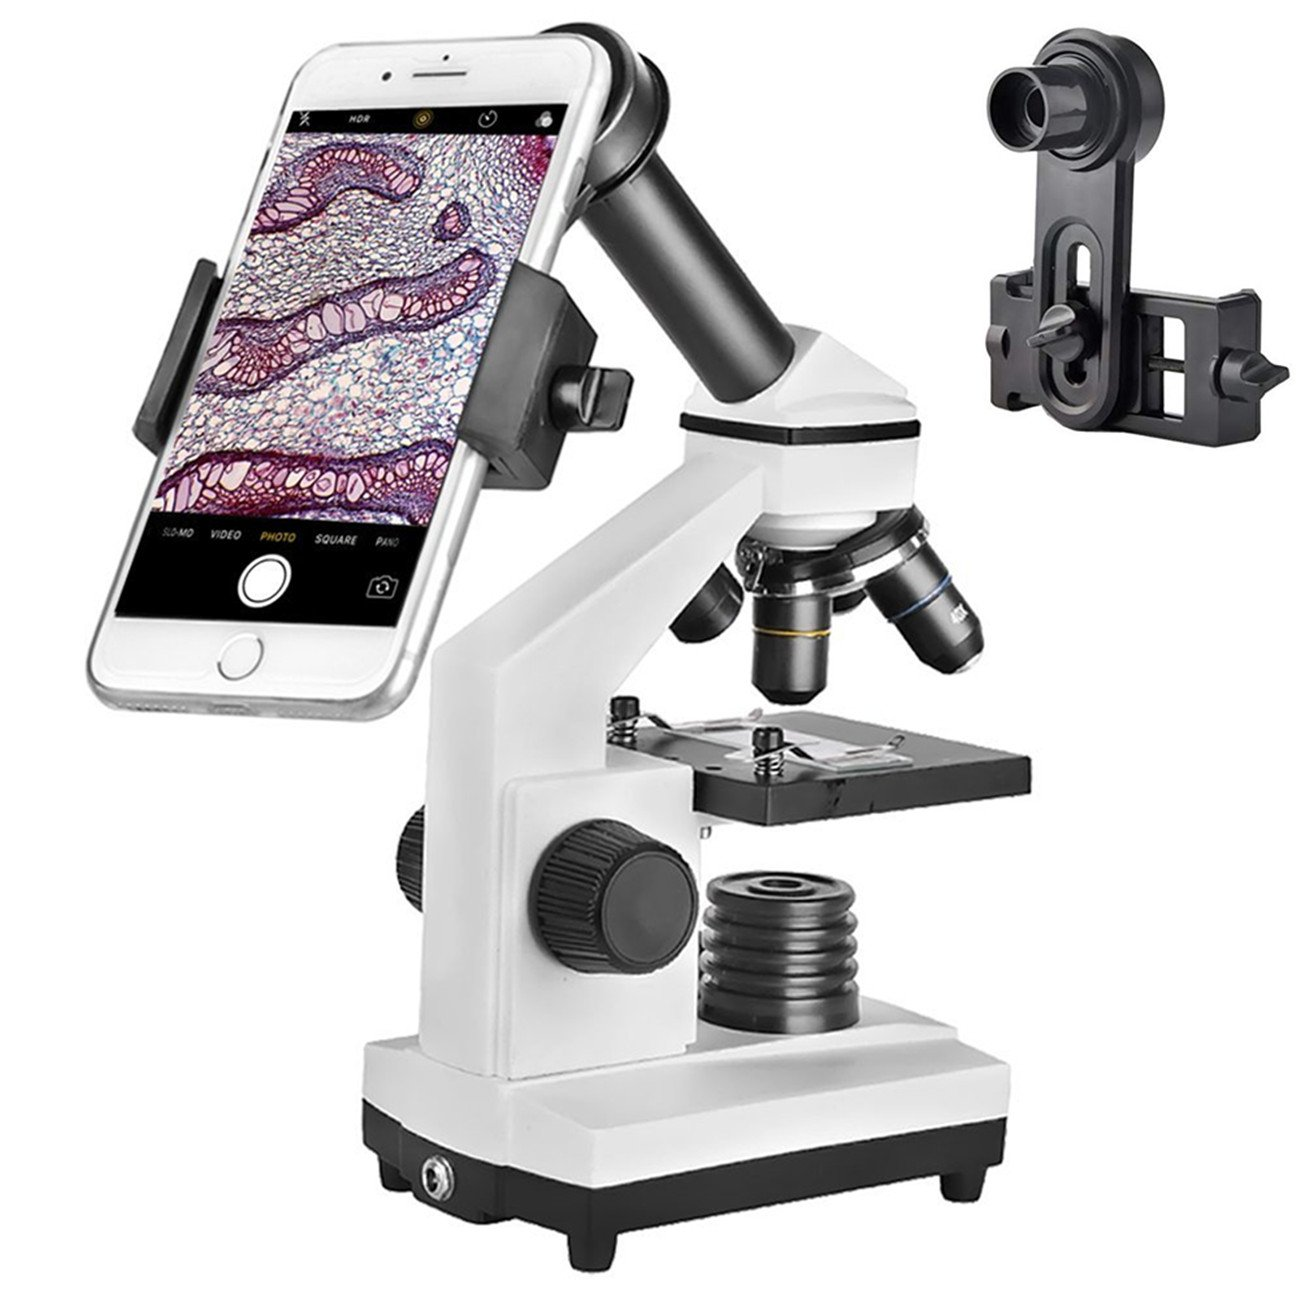 Student Microscope 40X-1000X Optical Glass Lens All-Metal LED Biological Compound Monocular Microscope with 16X Eyepiece Cellphone Digiscoping Adapter for Capturing the Micro World in the Screen by SOLOMARK